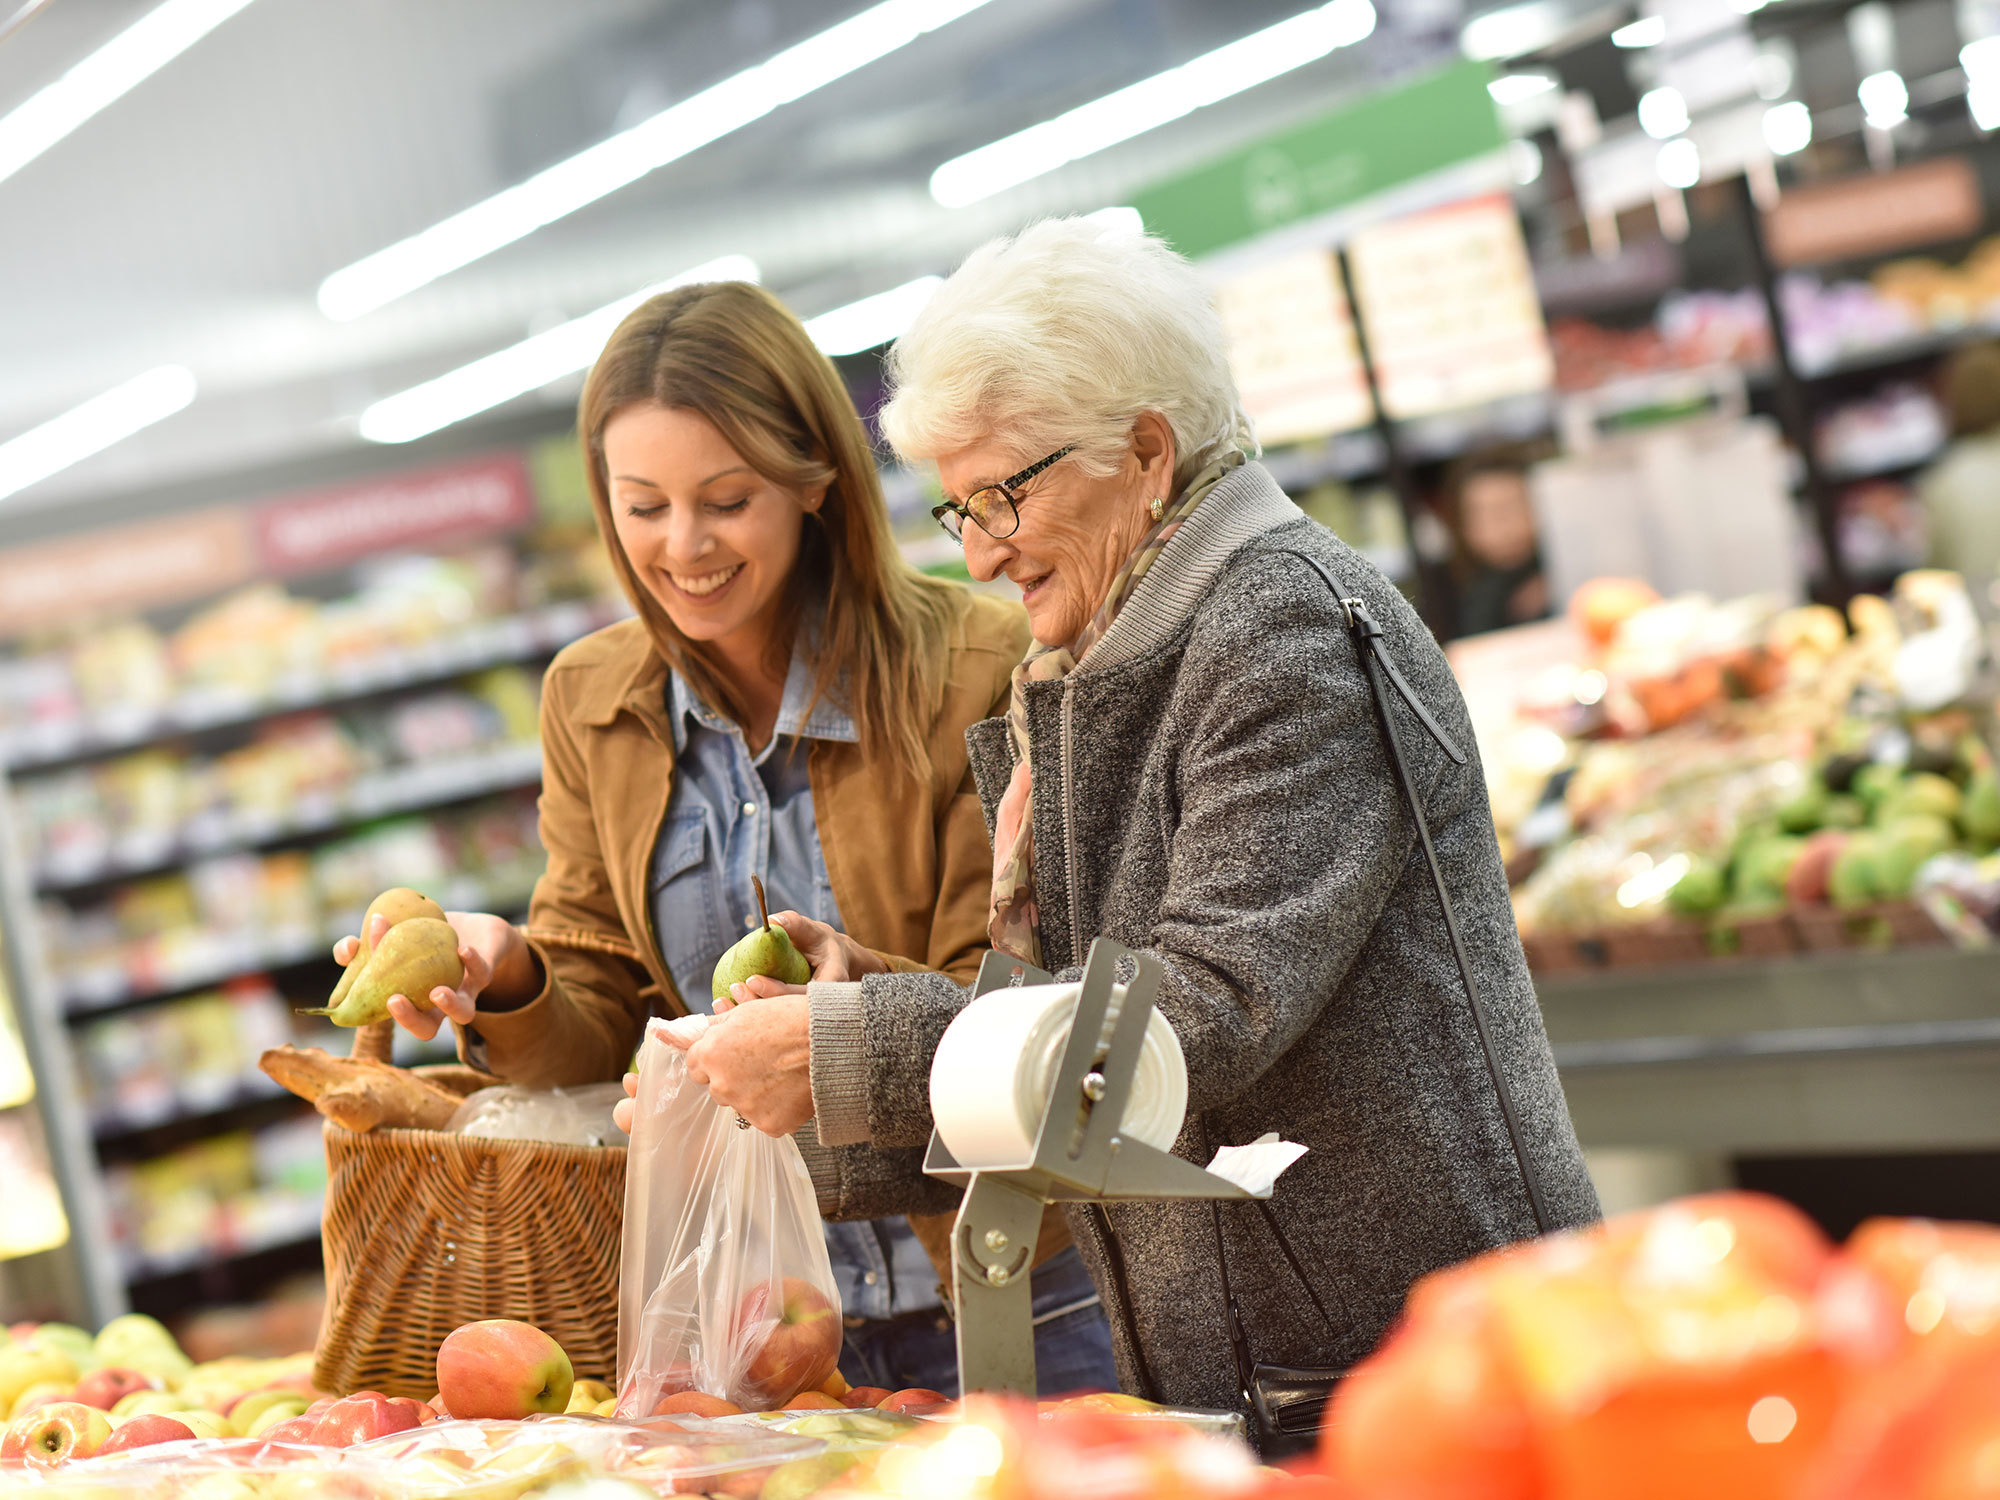 Older woman receiving carer assistance while shopping